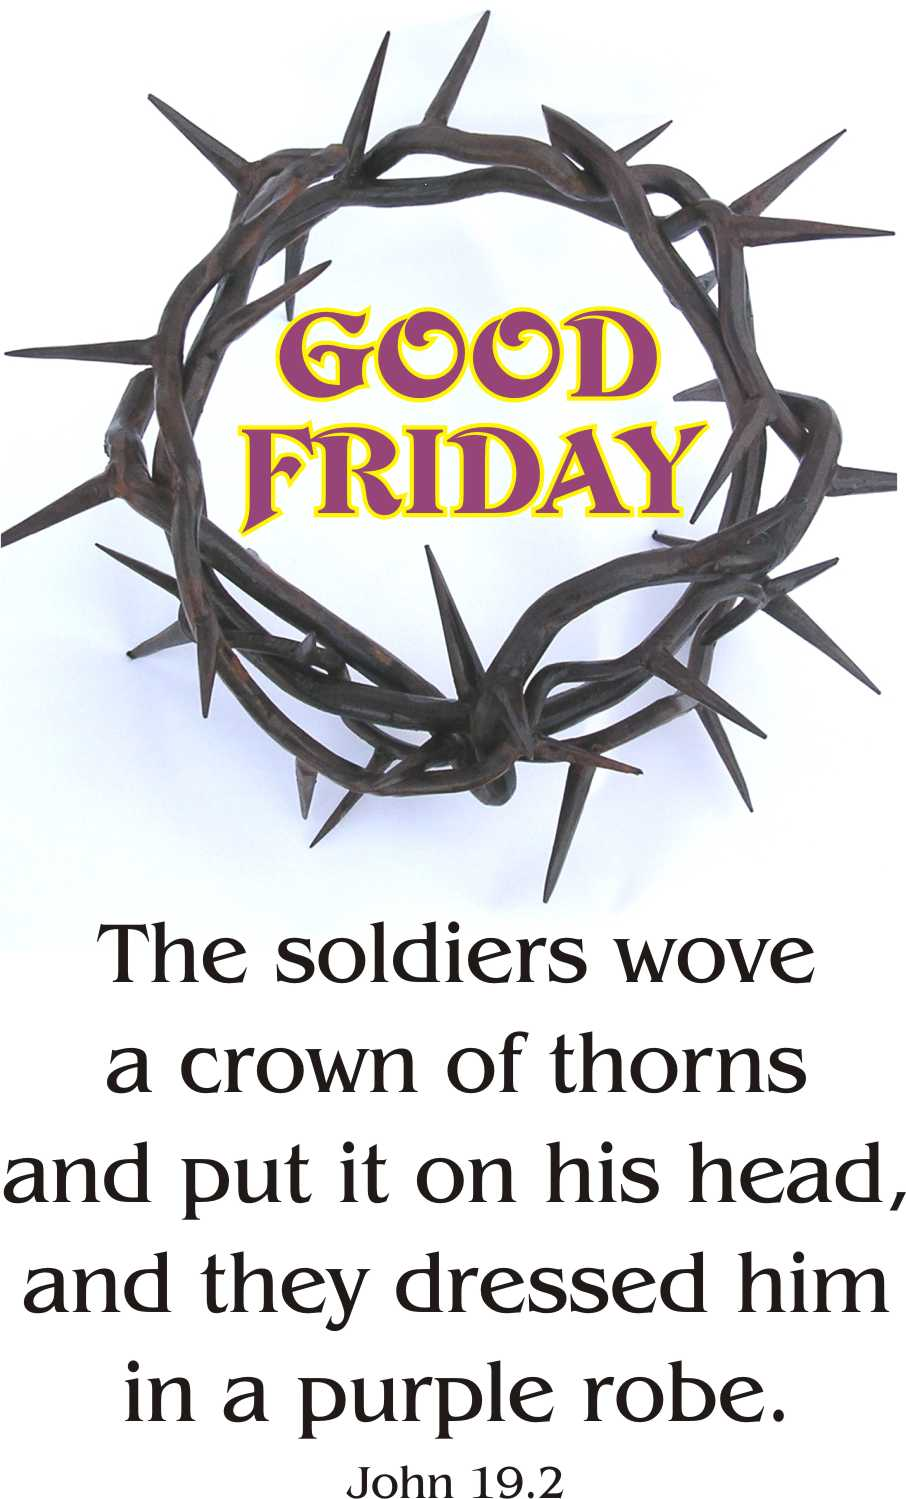 Clip Art Good Friday Clipart 20 very beautiful good friday clipart pictures the soldiers wove a crown of thorns picture